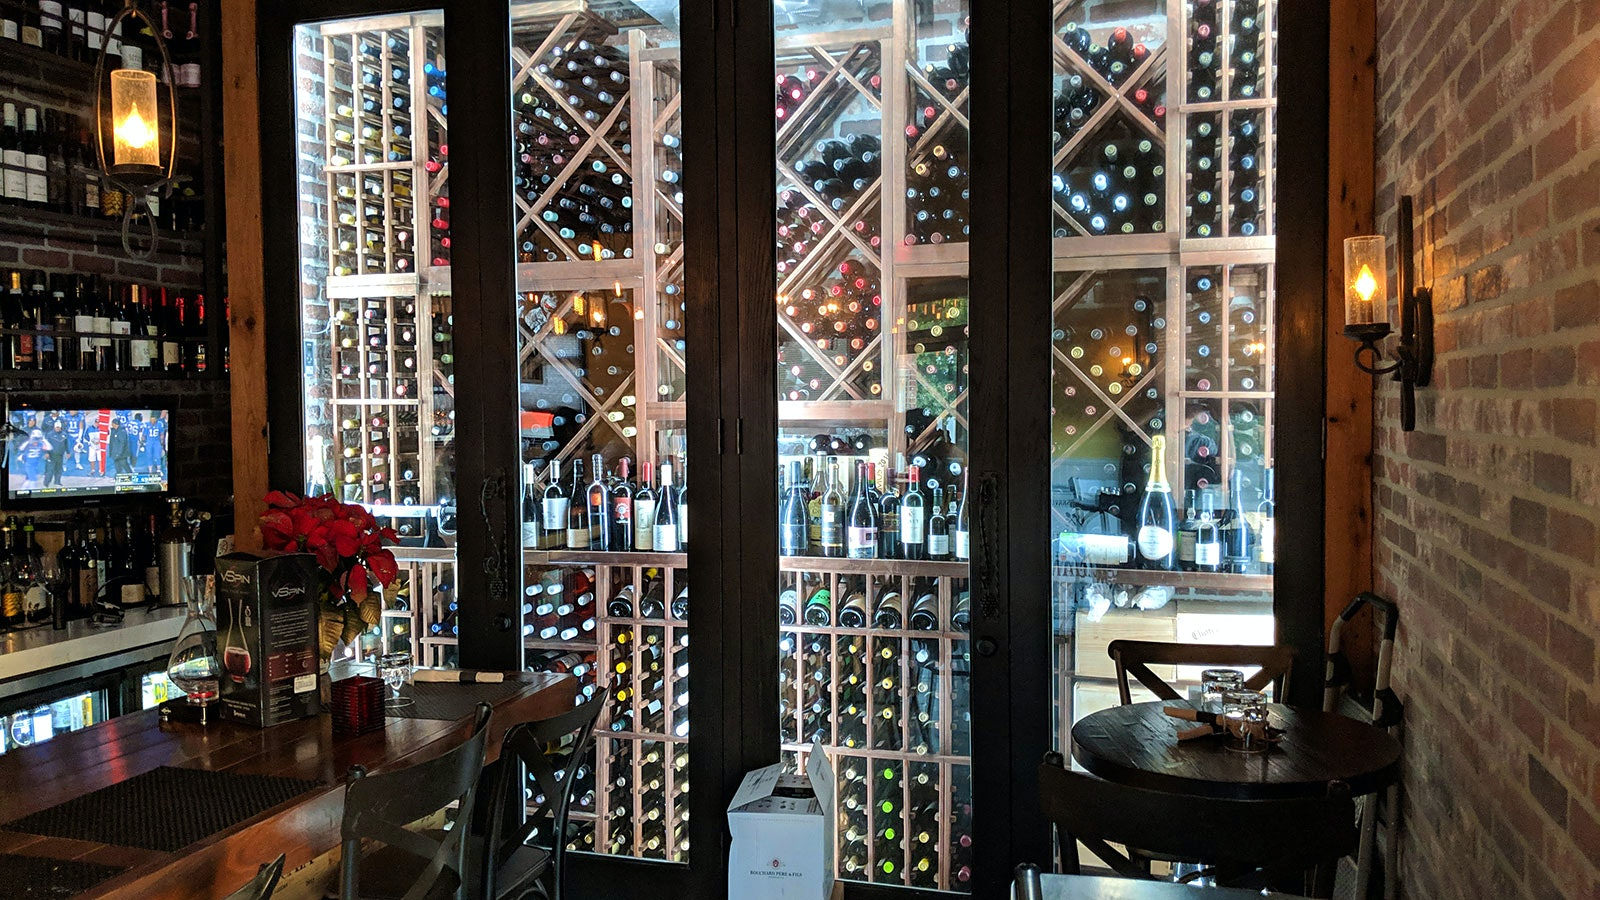 The wine cellar at Rustic Kitchen Market & Cafe